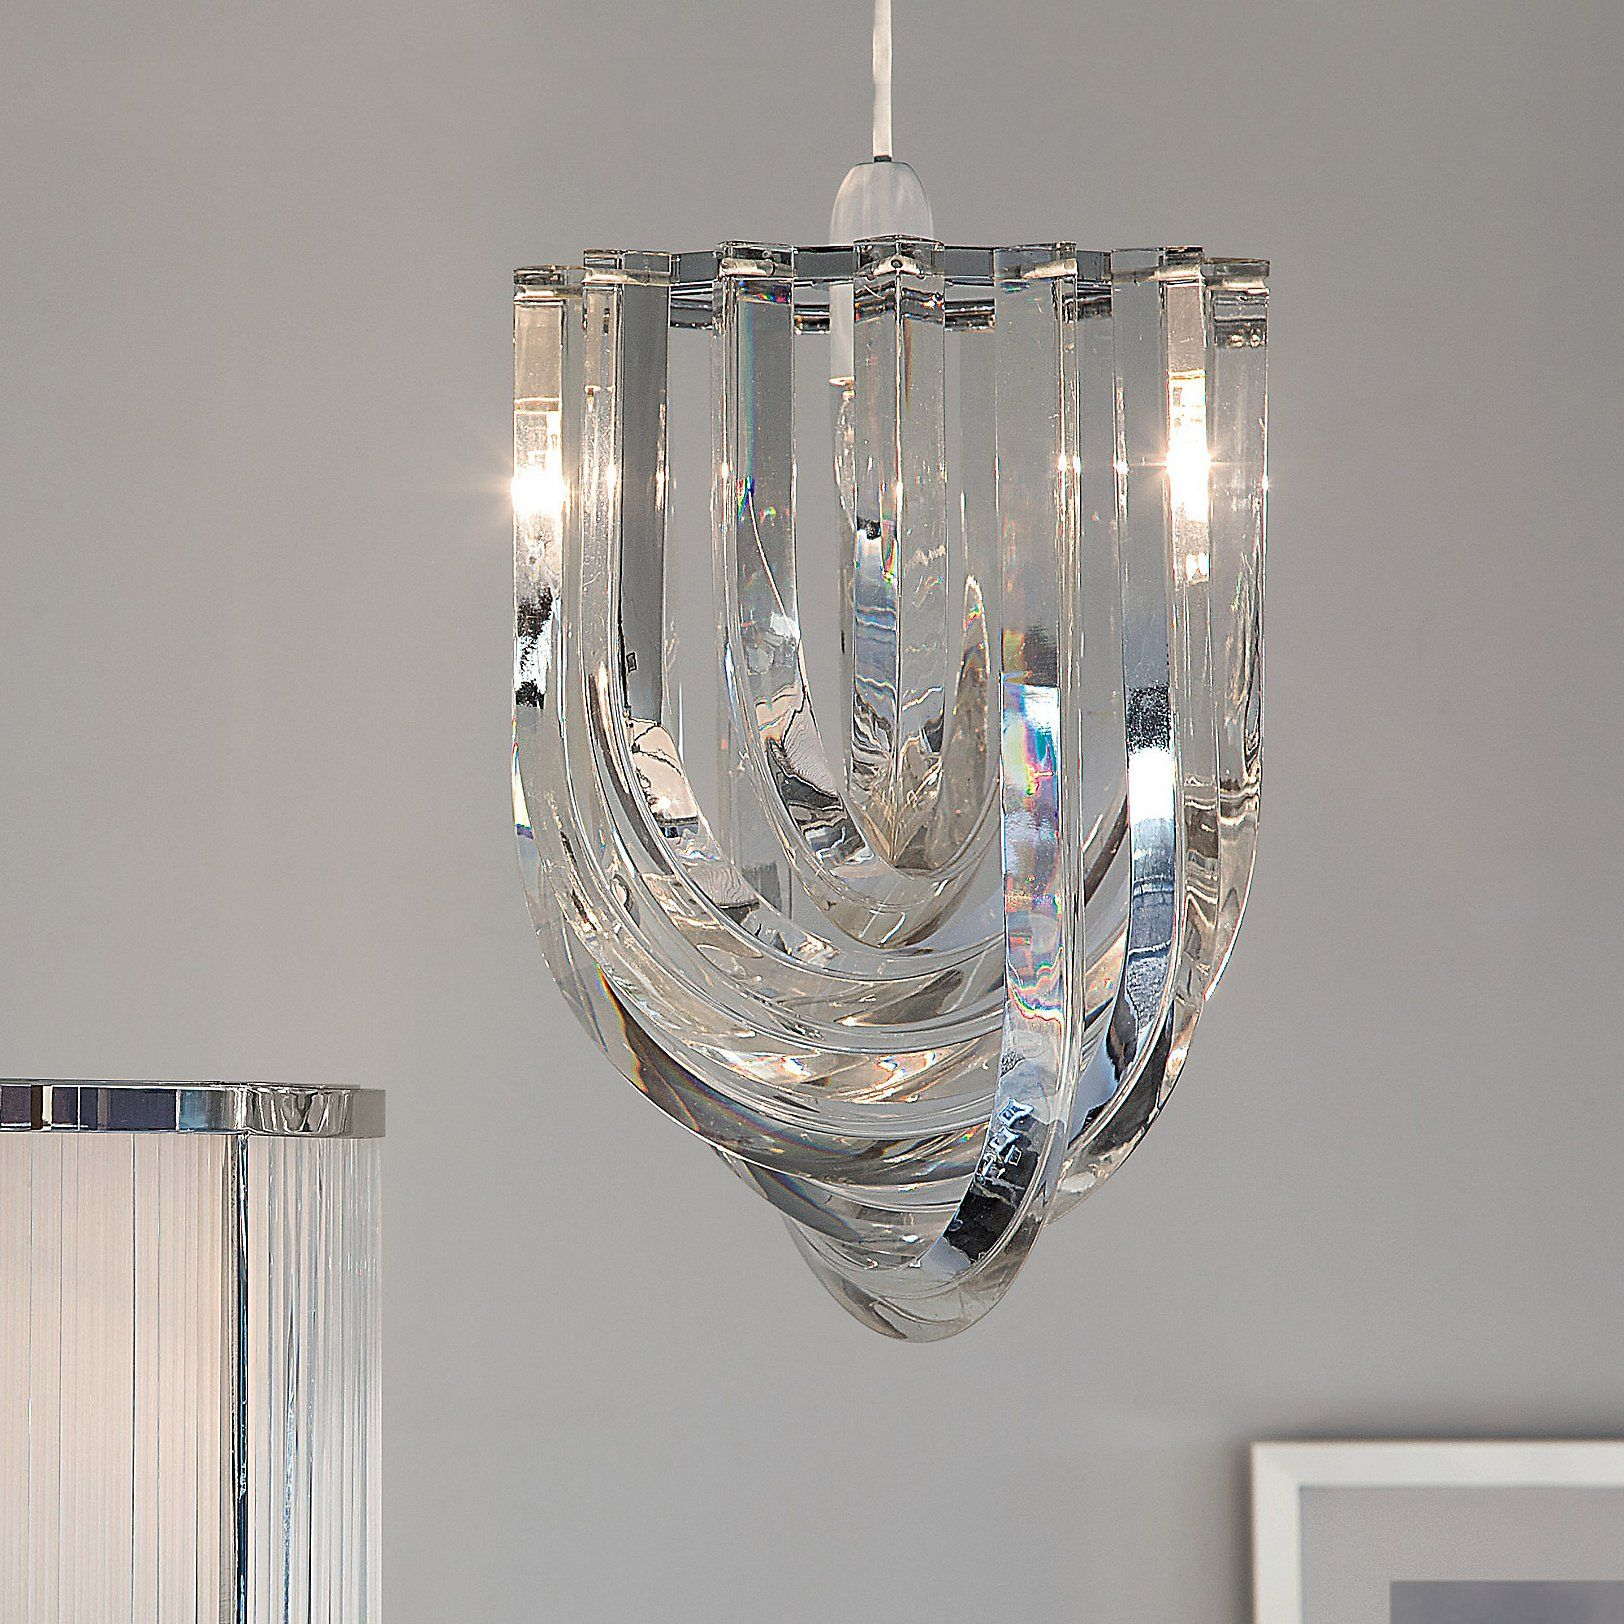 Deco Chandelier Light Shade Lighting Home Accessories The White Company Uk